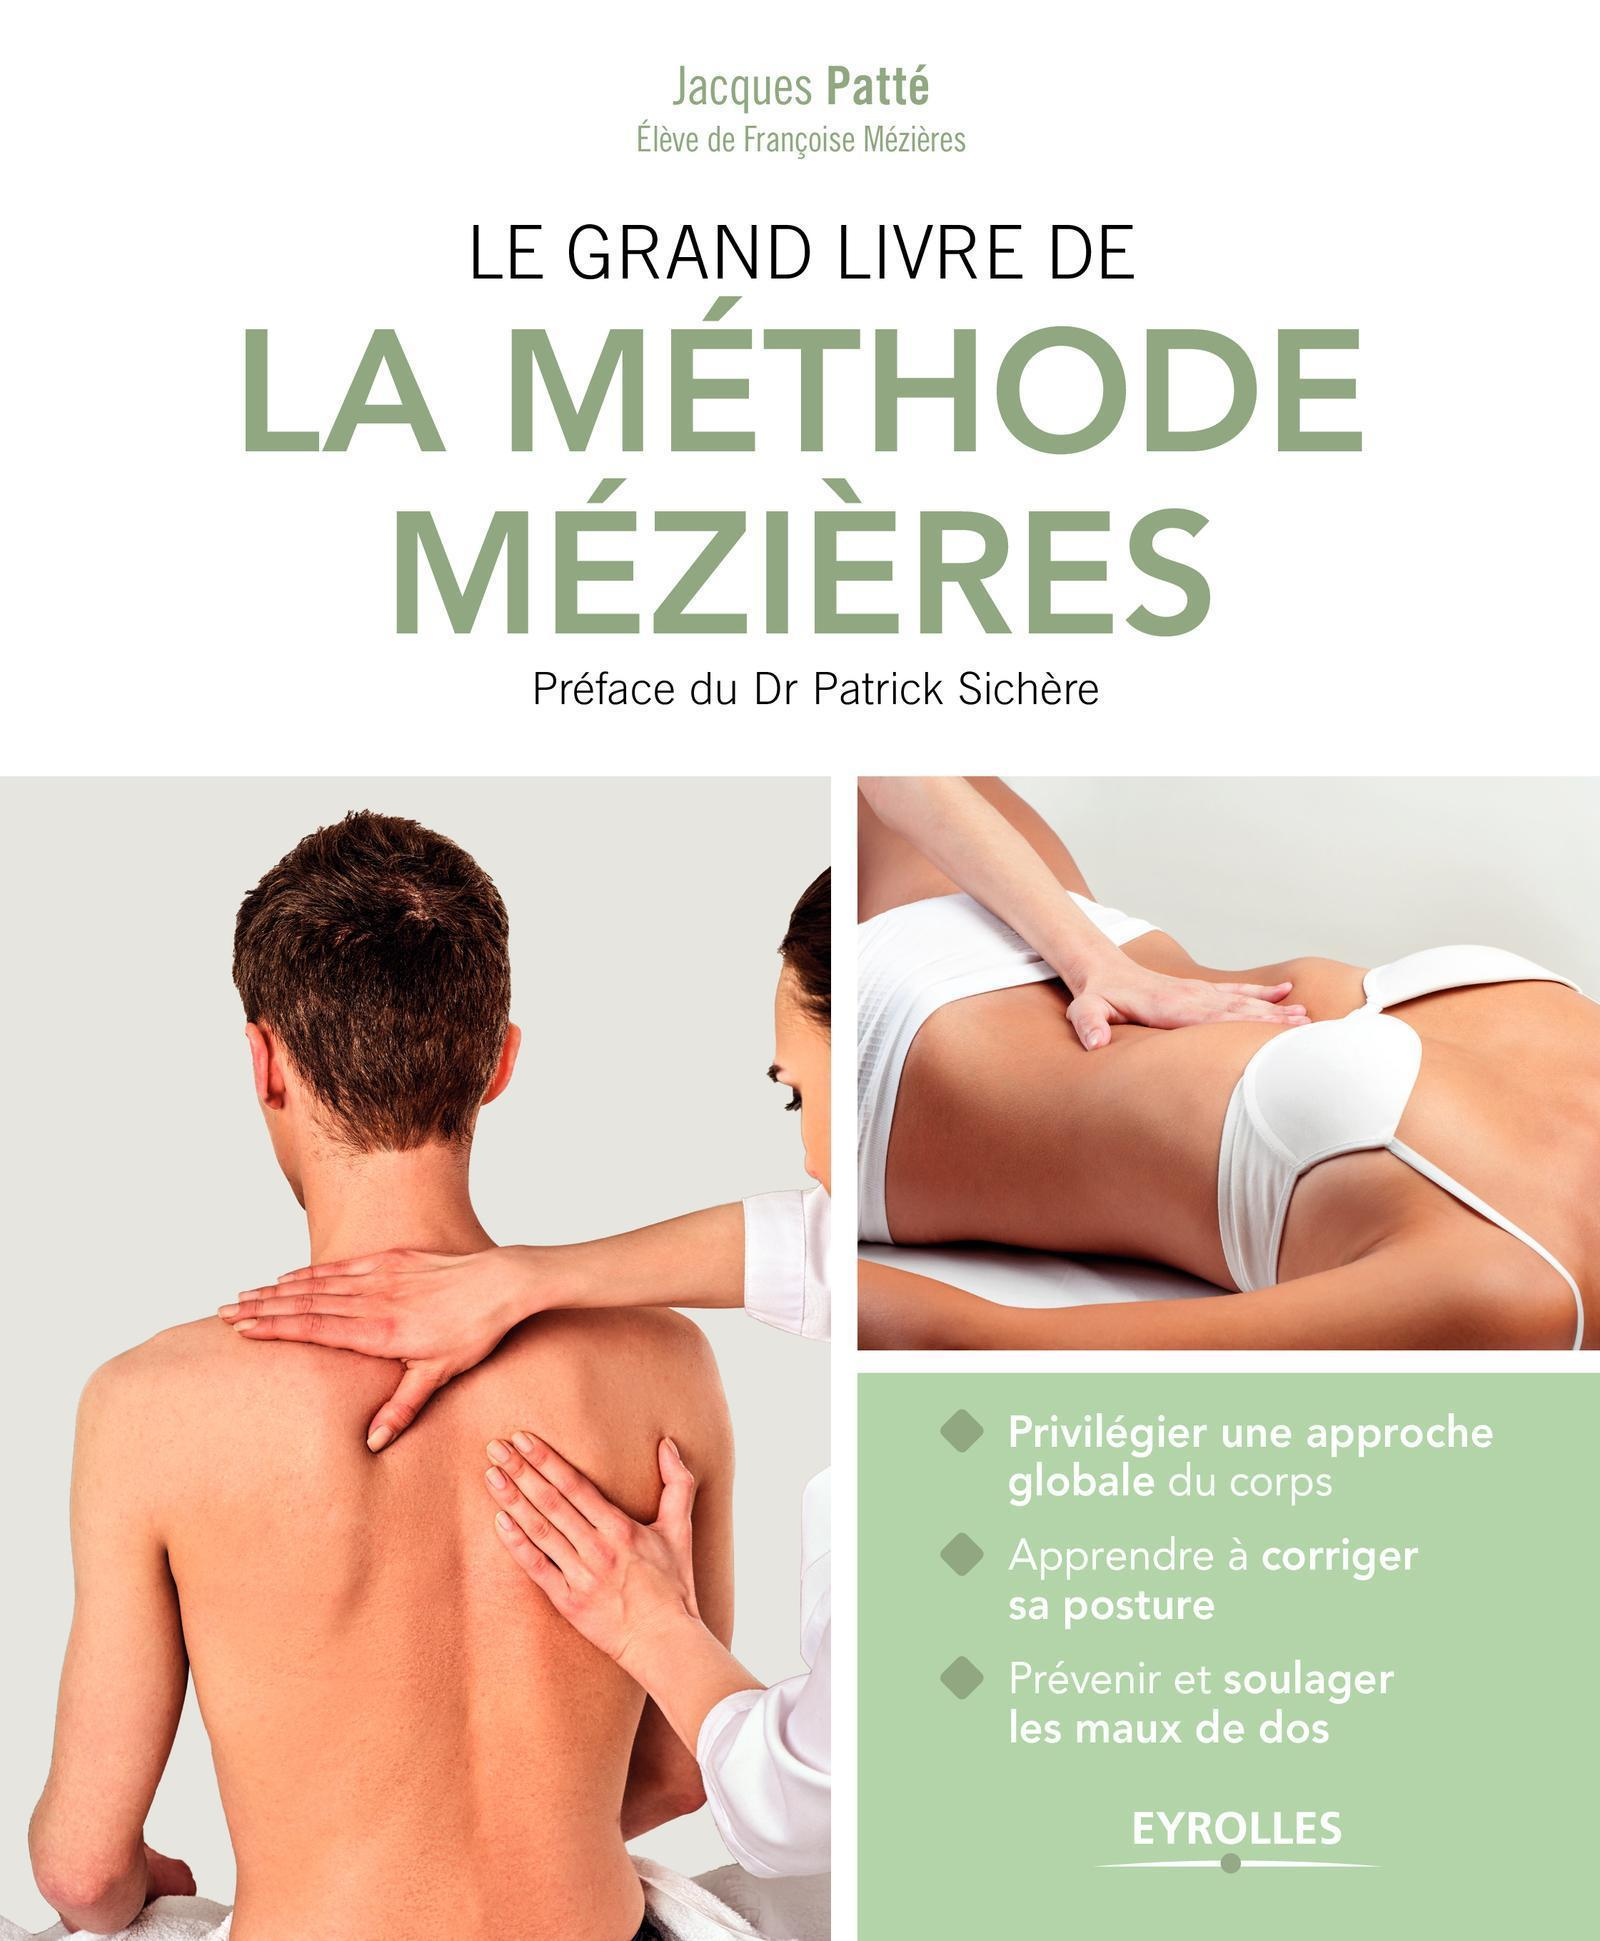 LE GRAND LIVRE DE LA METHODE MEZIERES